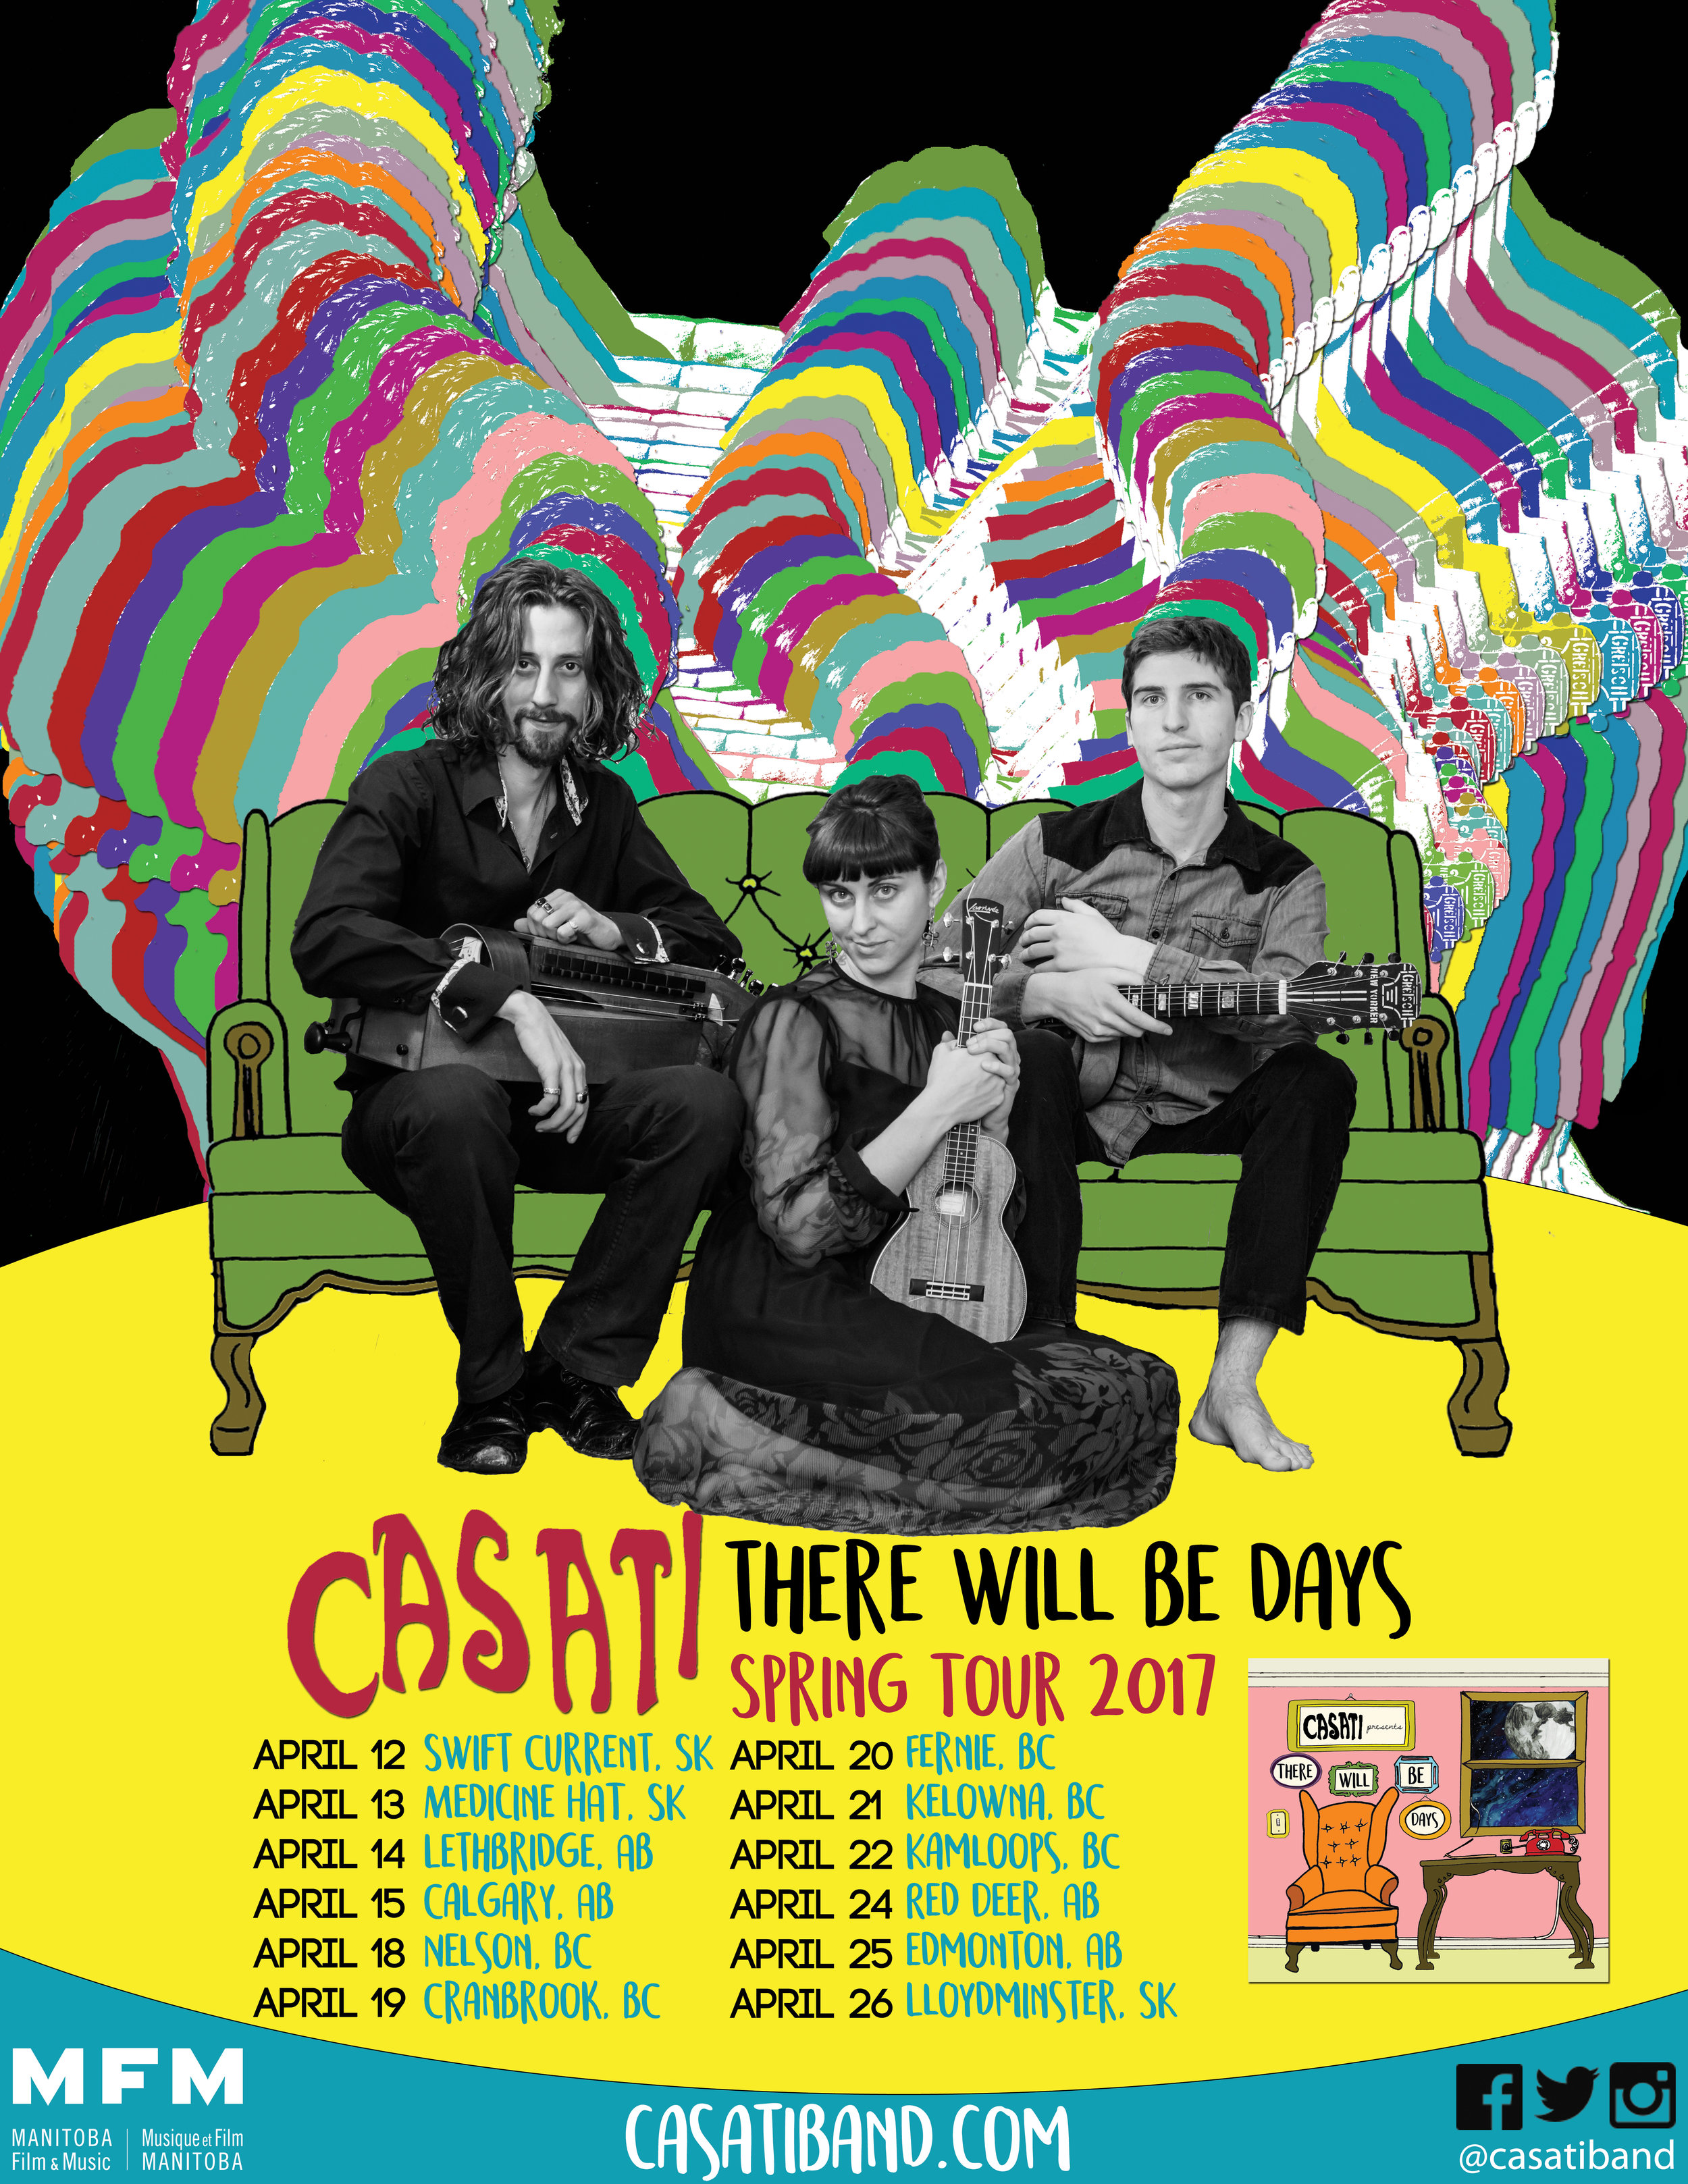 casati_there_will_be_days_tour_poster.jpg